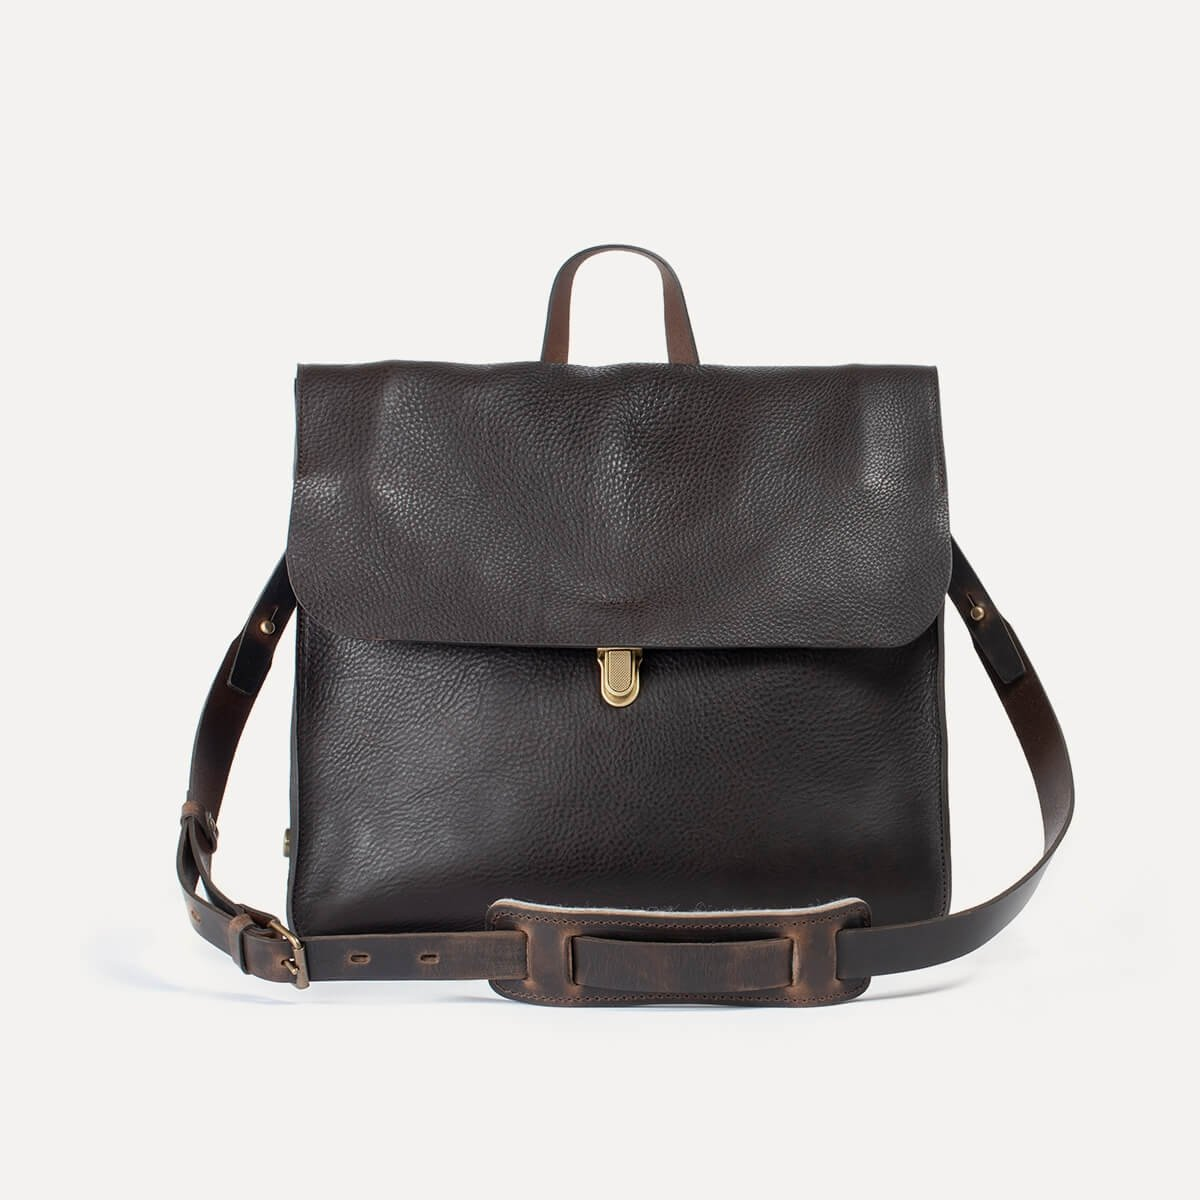 Chico Leather Satchel - Dark Brown / E Pure (image n°1)